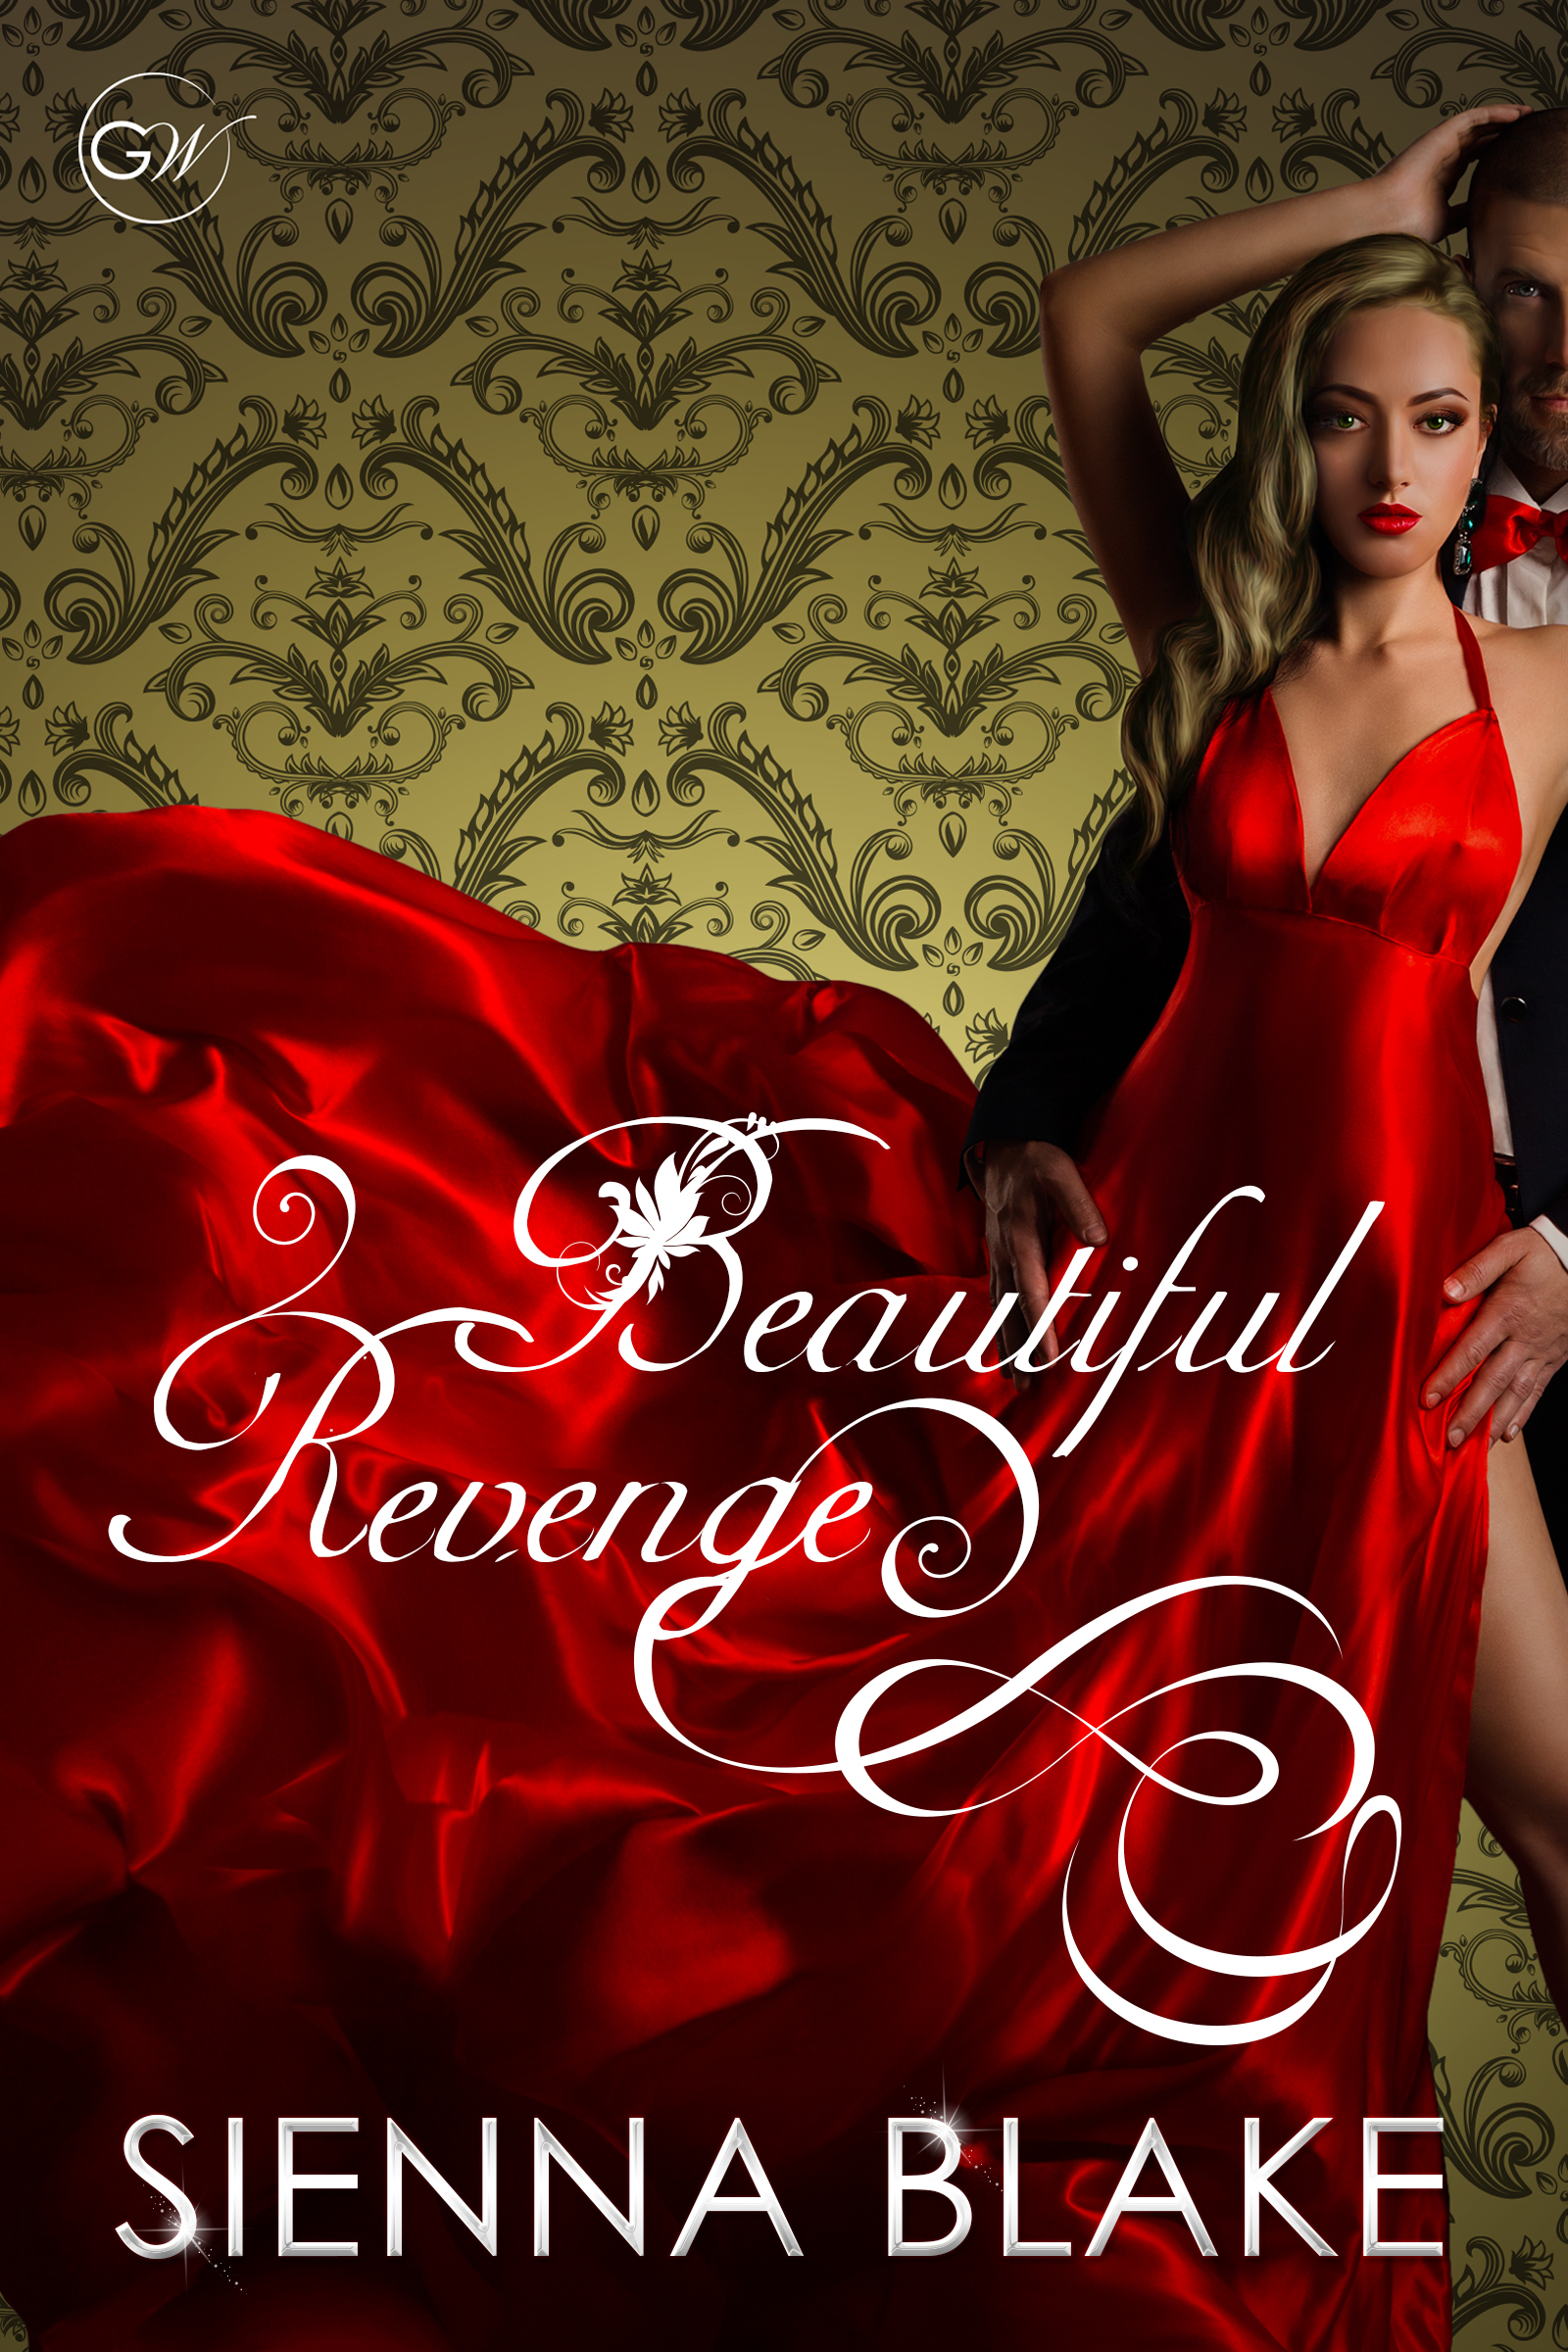 Beautiful Revenge by Sienna Blake